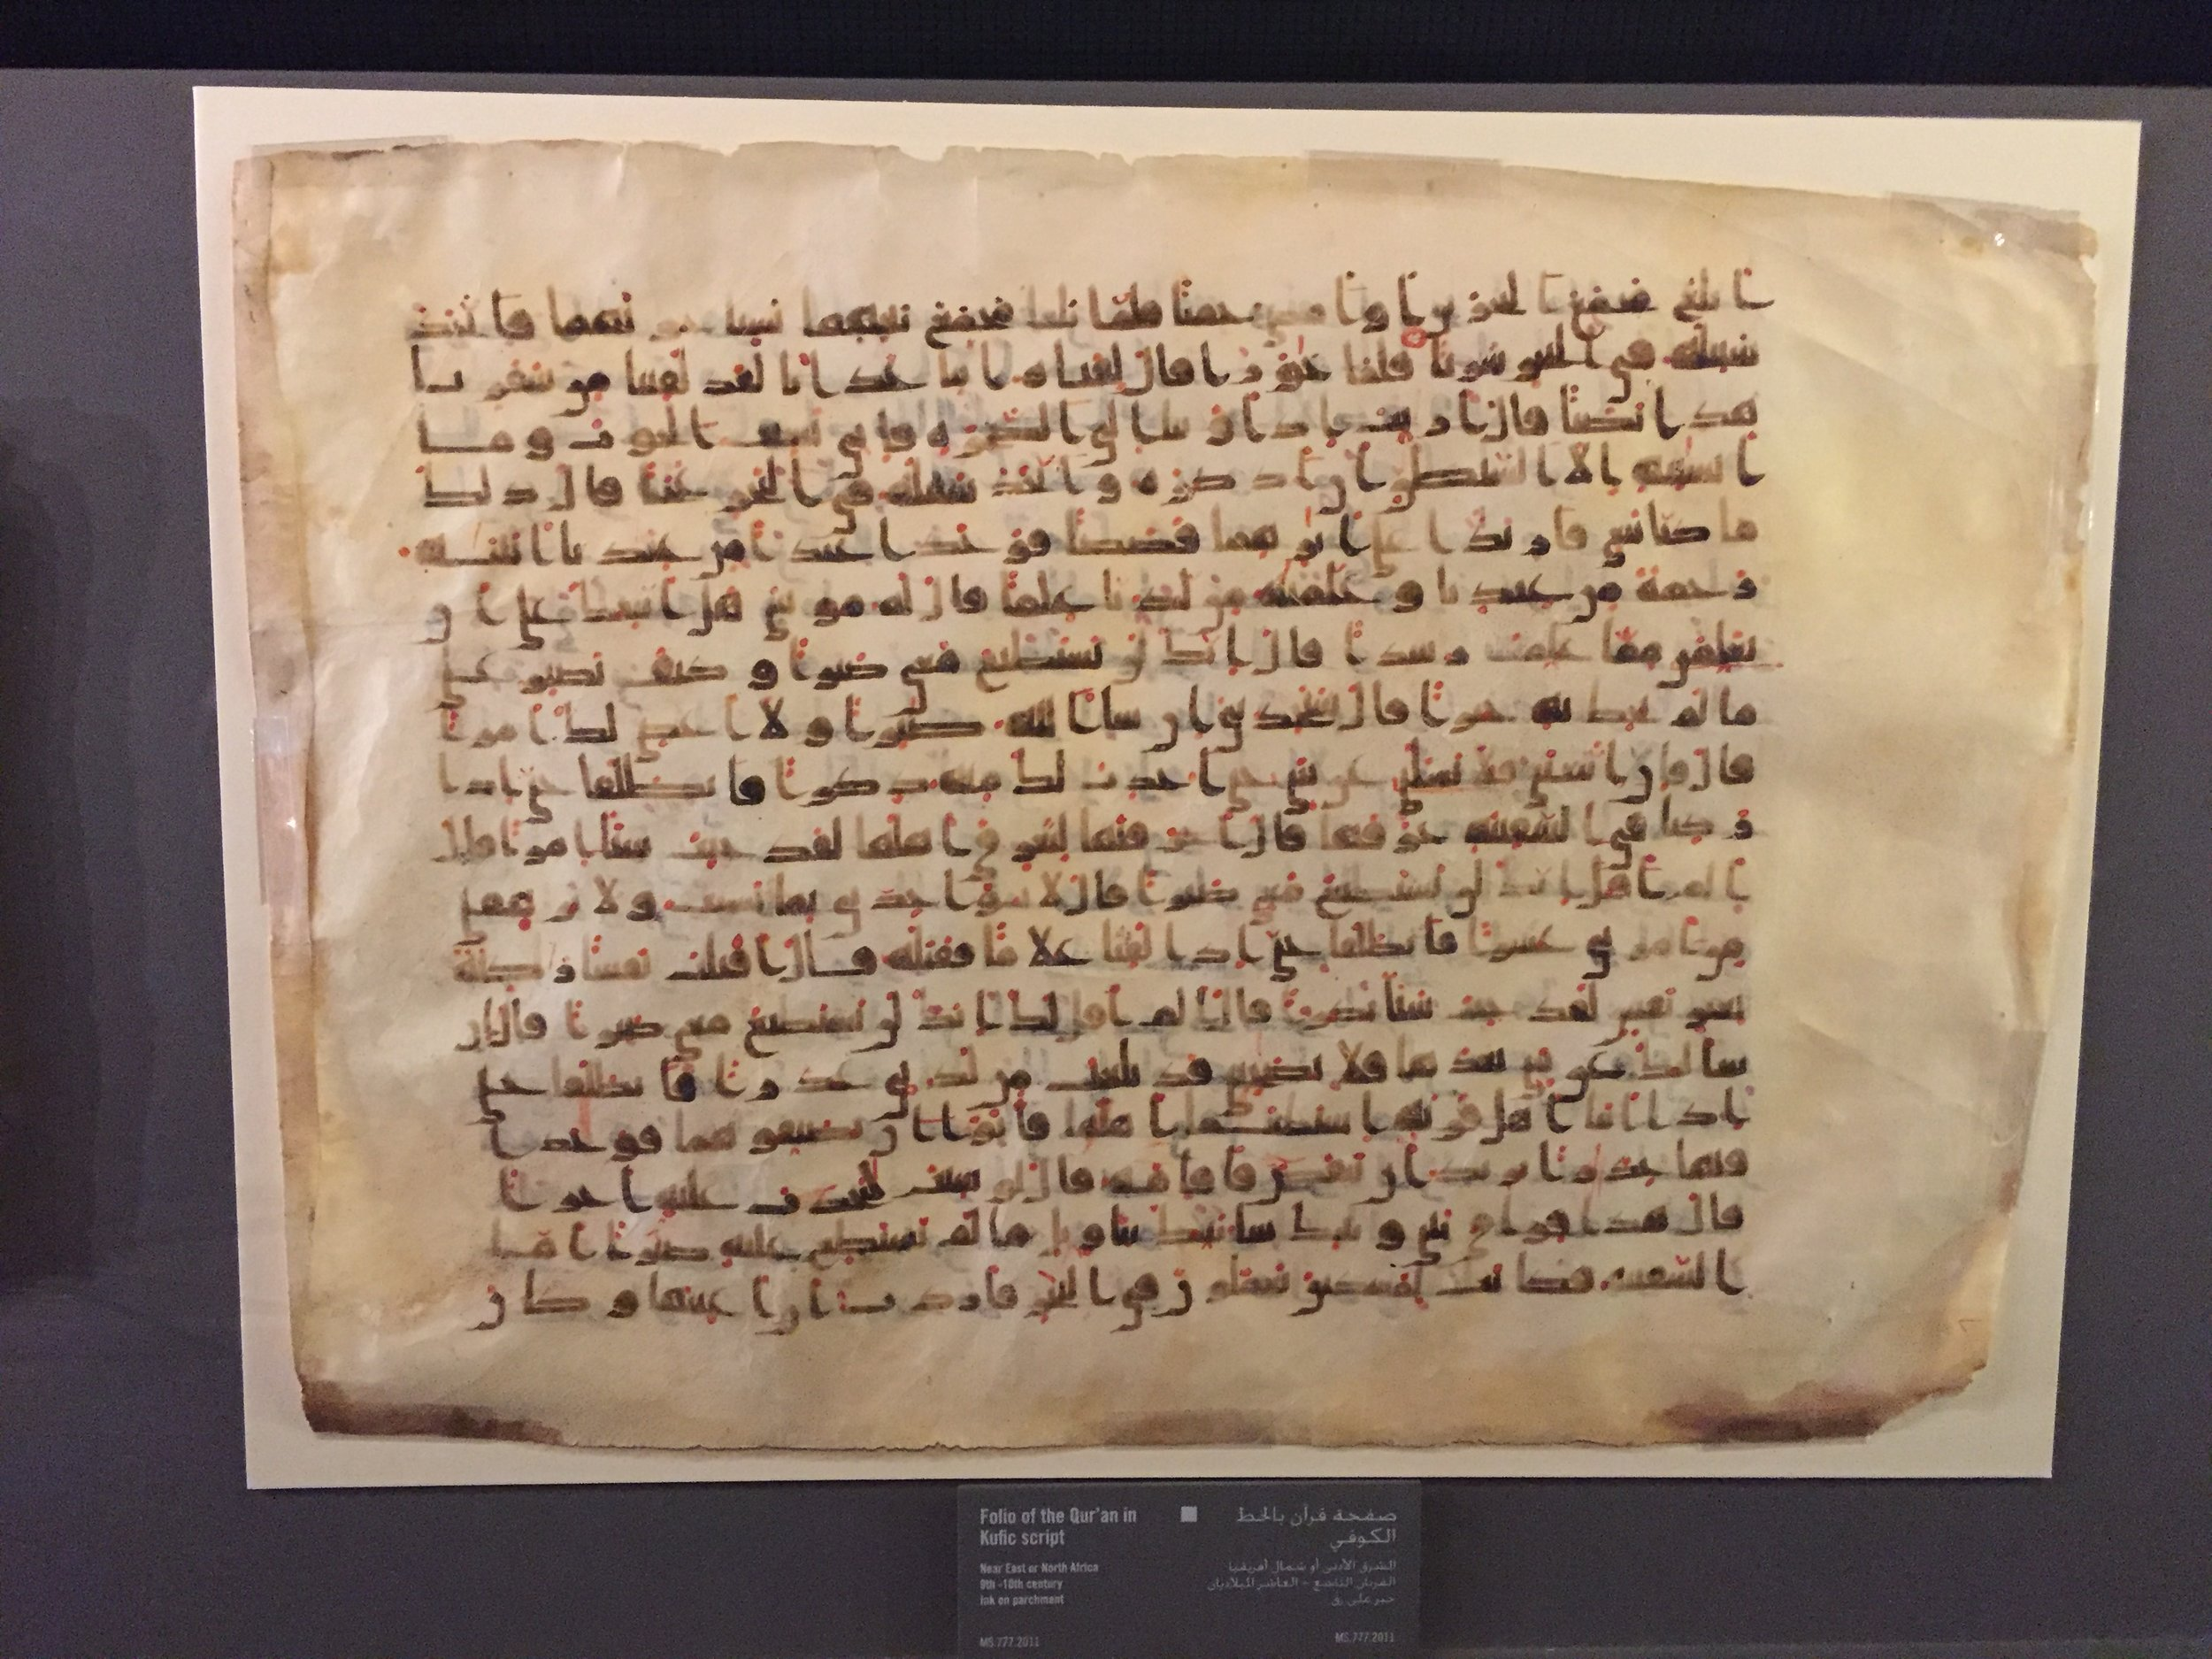 A page from an early hand-written Quran.